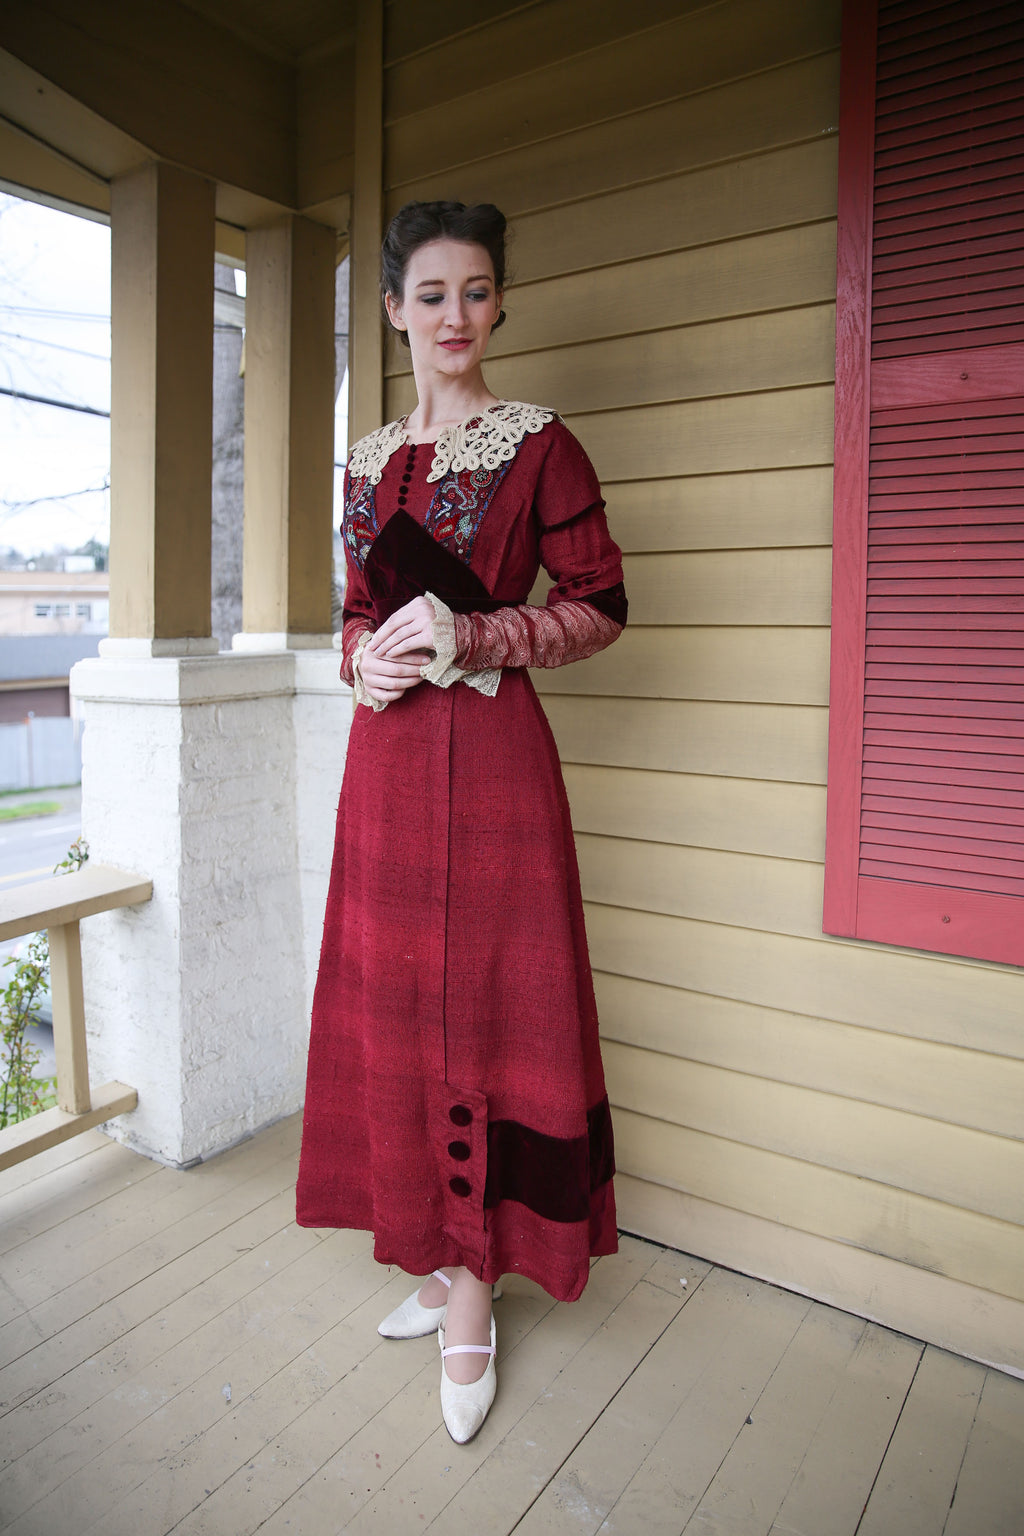 Gorgeous Previously Restored 1910s Day Dress in Silk Twill with Replaced Accents